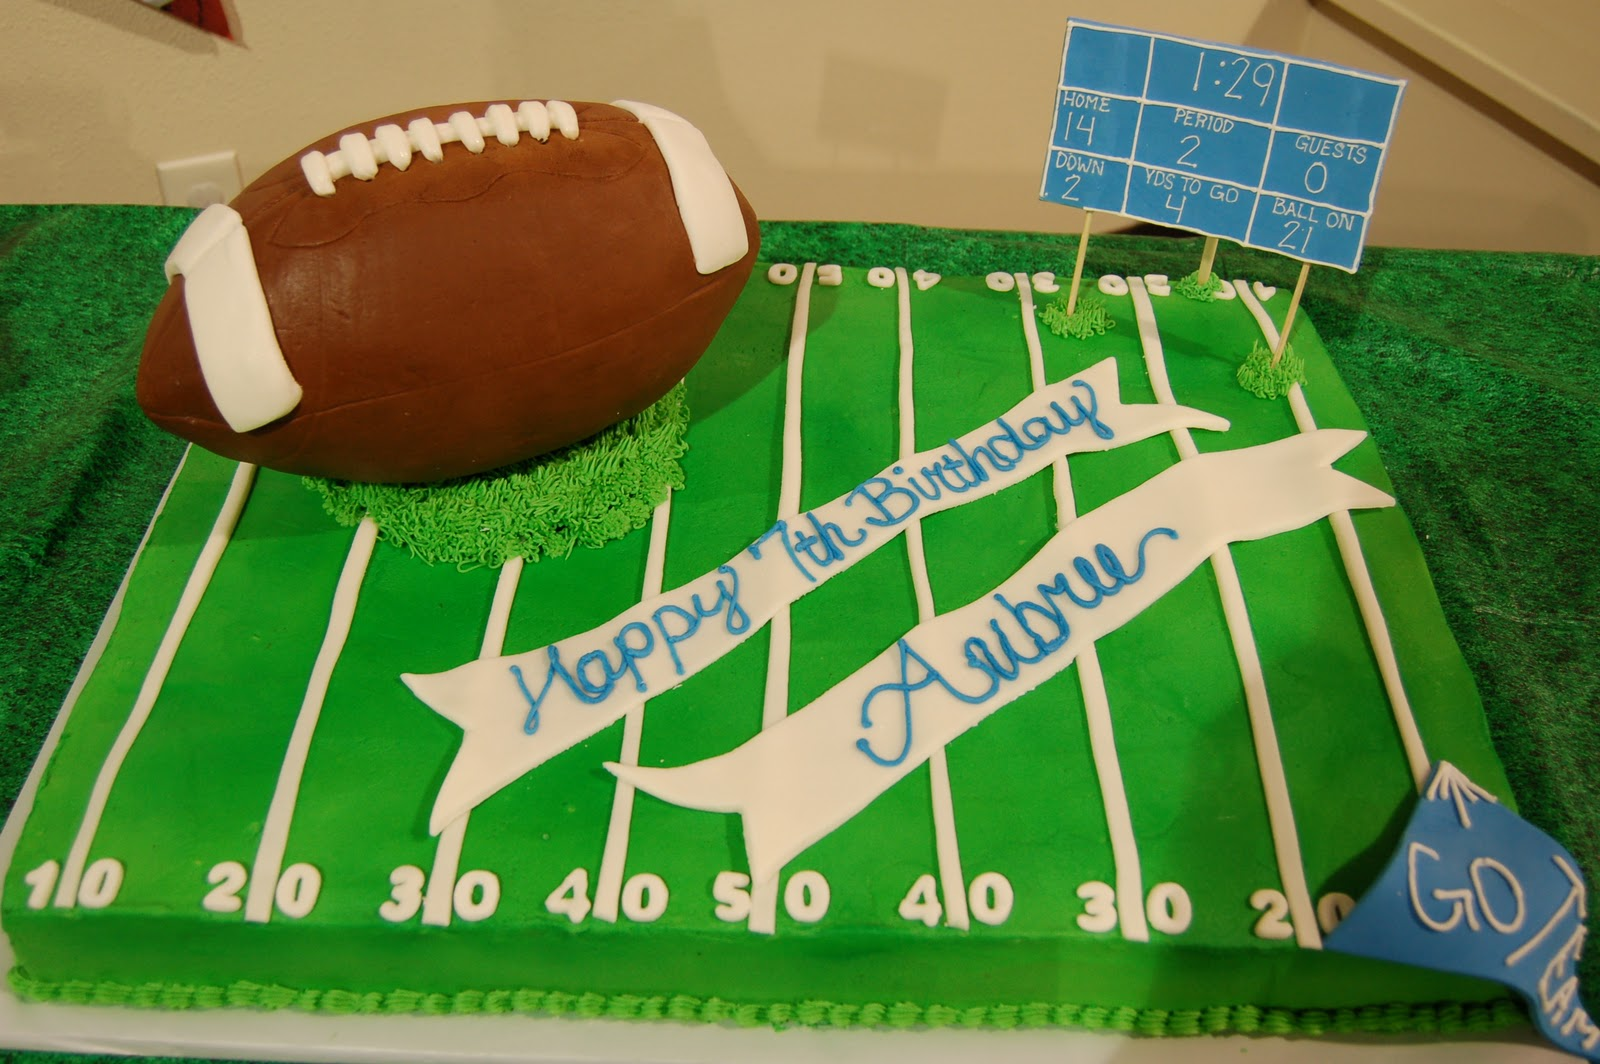 Football Themed Cakes http://cestsibonsweets.blogspot.com/2011/01/football-birthday-cake.html